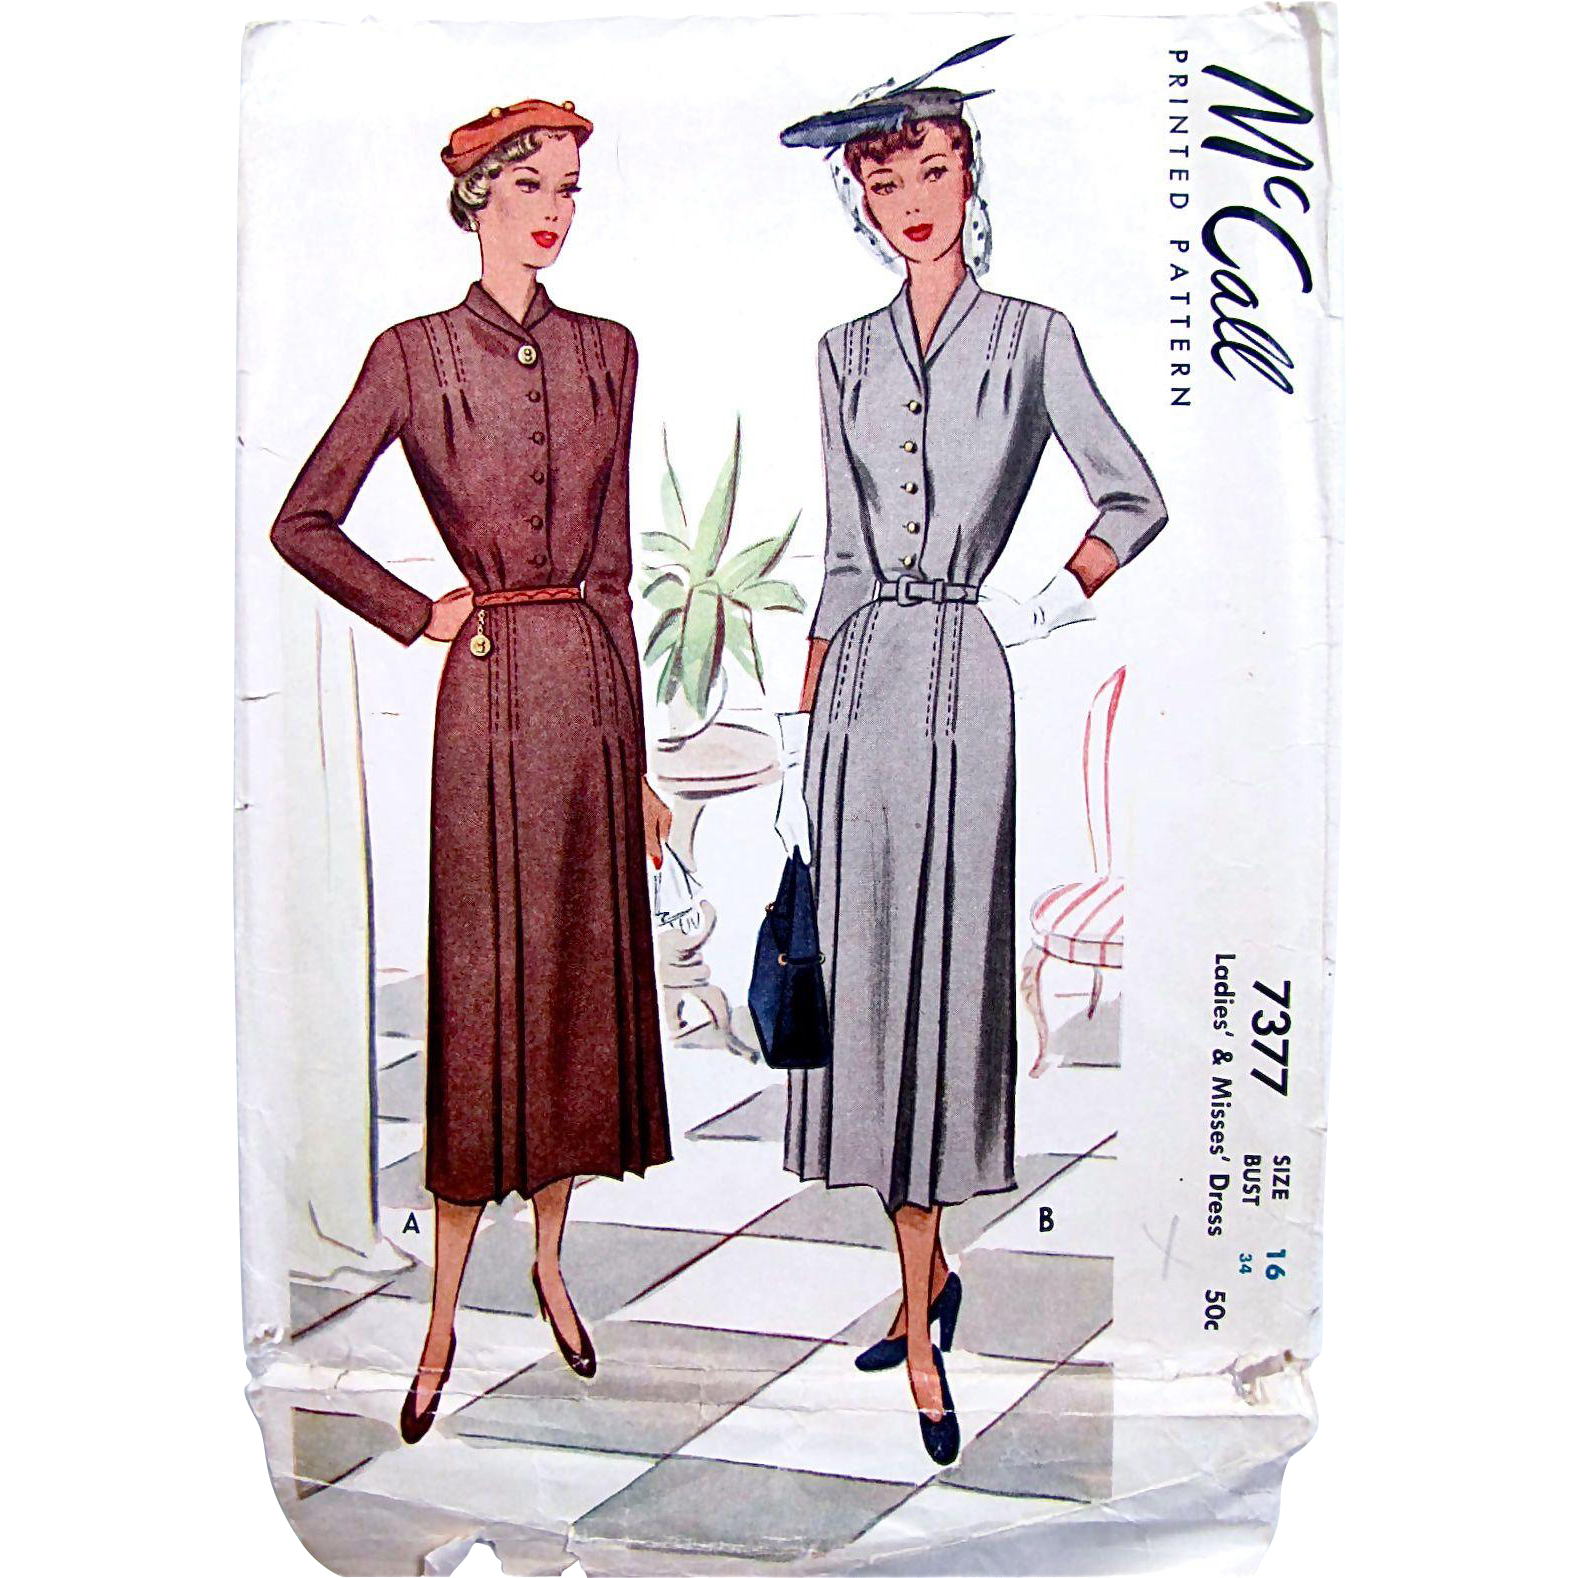 Ladies Tailored Dress Pattern, Vintage 1948, McCall 7377, Size 16 Bust 34, Complete